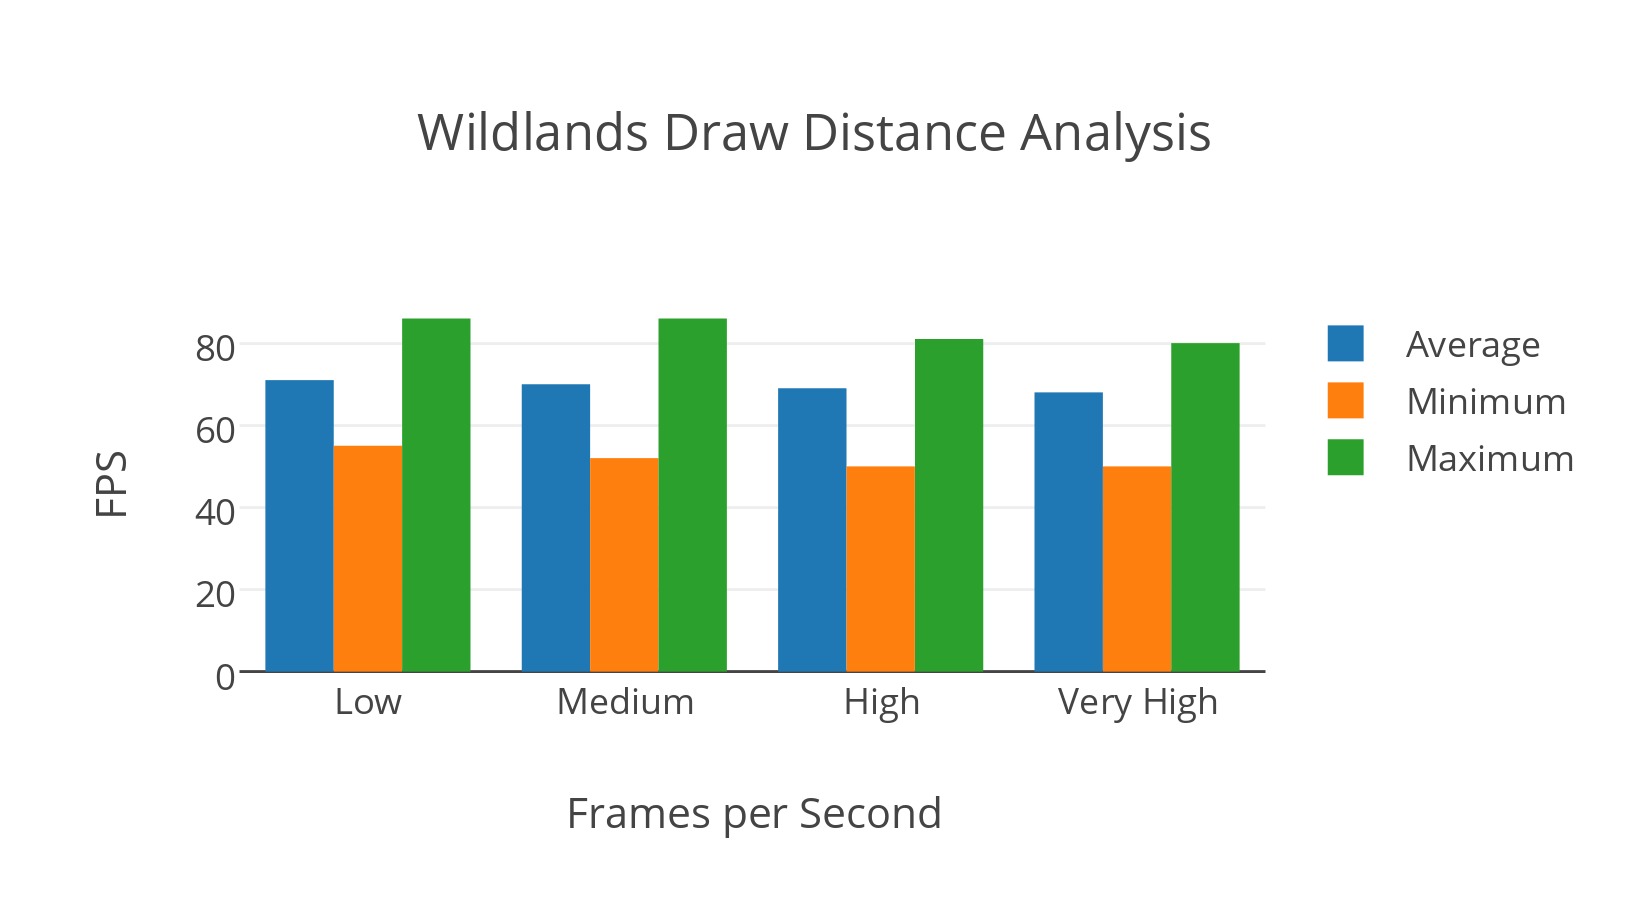 Wildlands Draw Distance Analysis